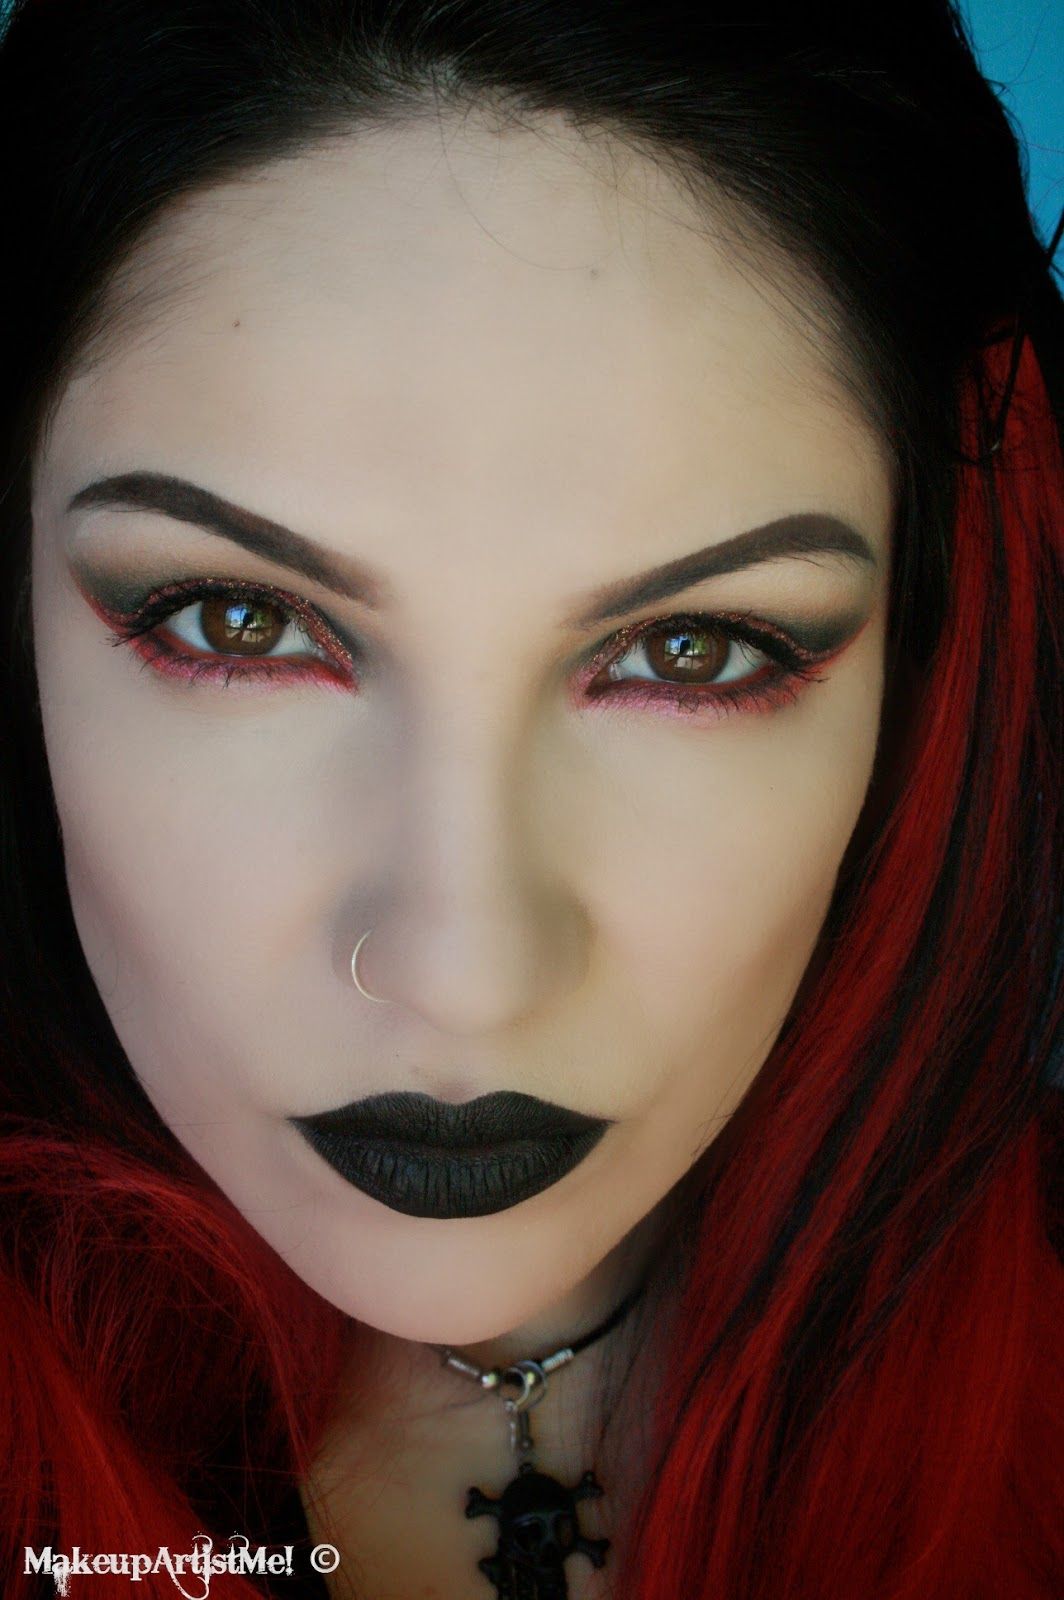 Make Up Tutorials Youtube: Make-up Artist Me!: My Goth! Makeup Tutorial